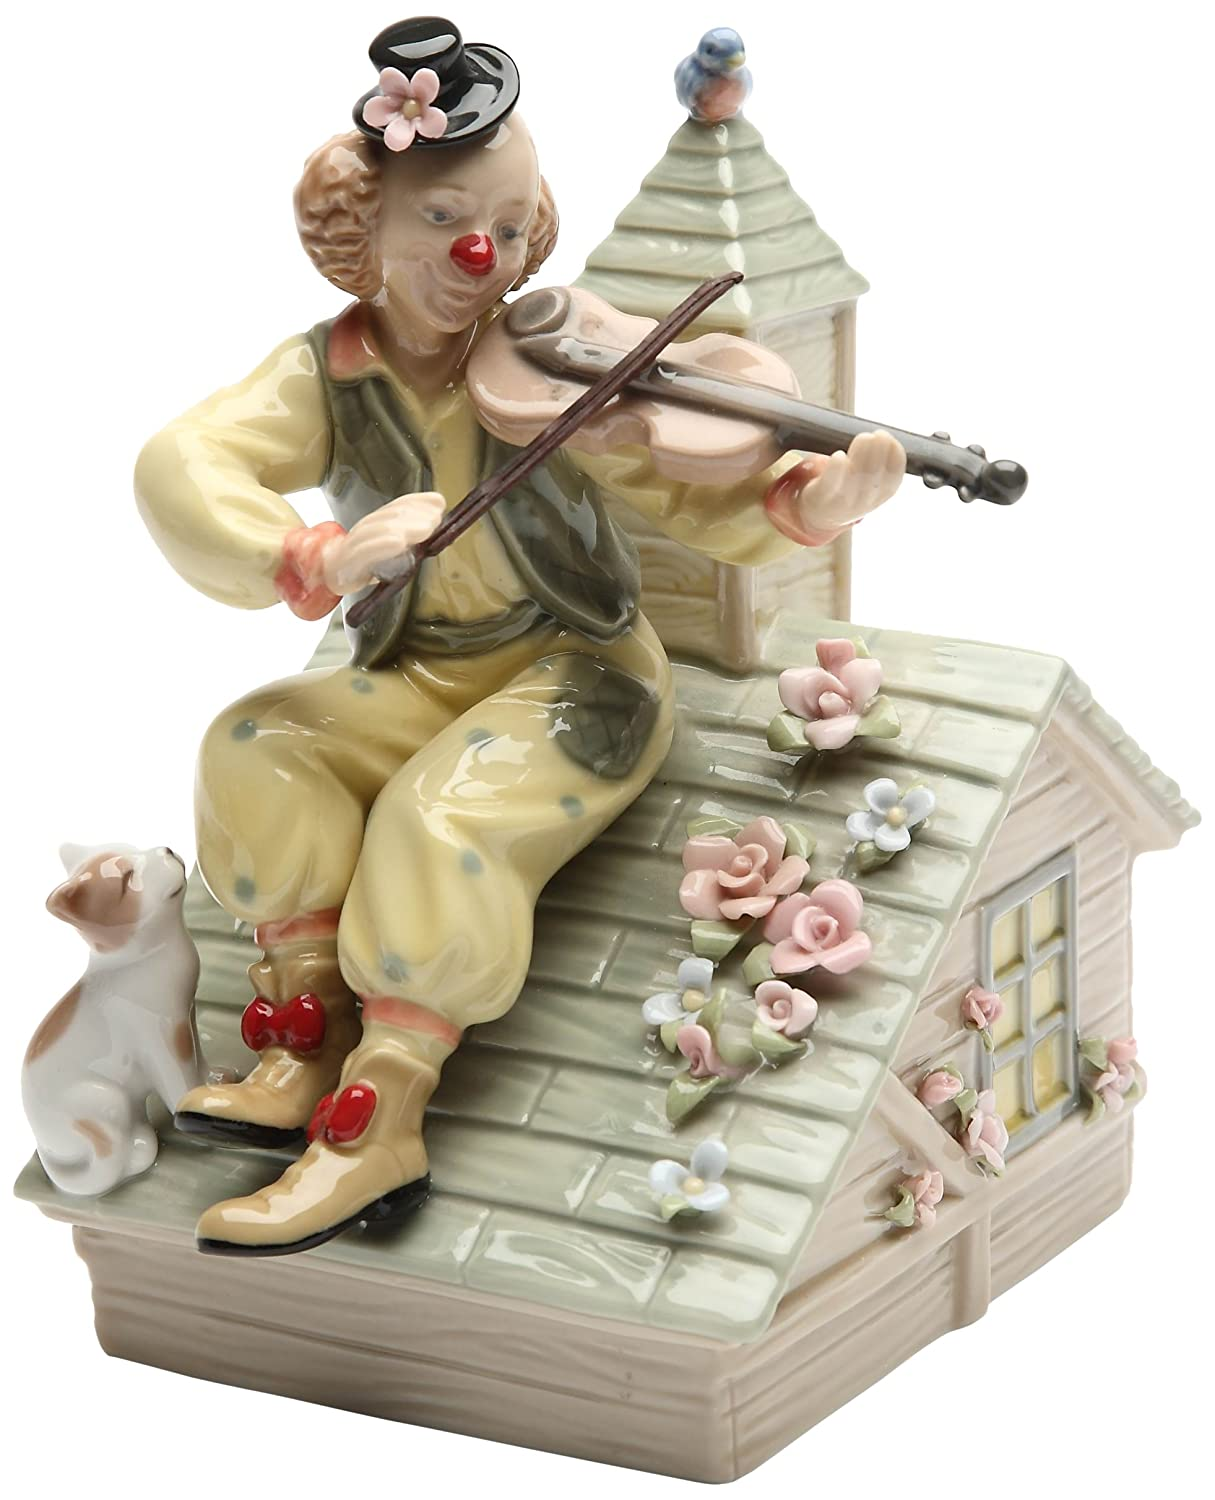 CG 20867 6.25 Fiddle Playing Clown on Rooftop with Cat Music Box Figurine